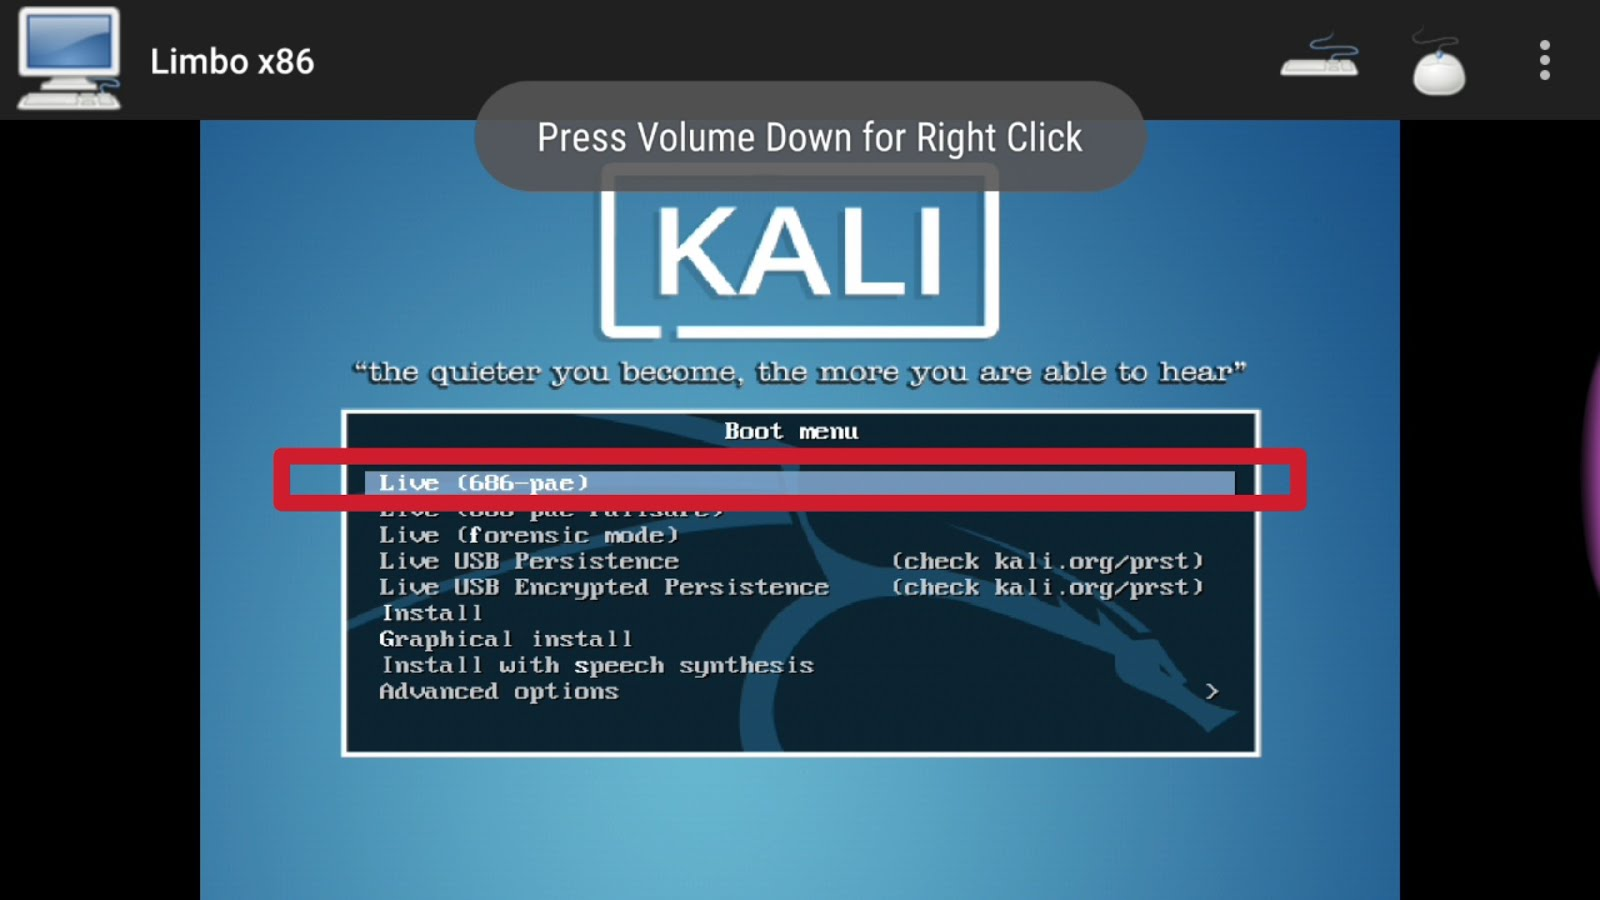 How to Install Latest Kali Linux on Any Android Phone